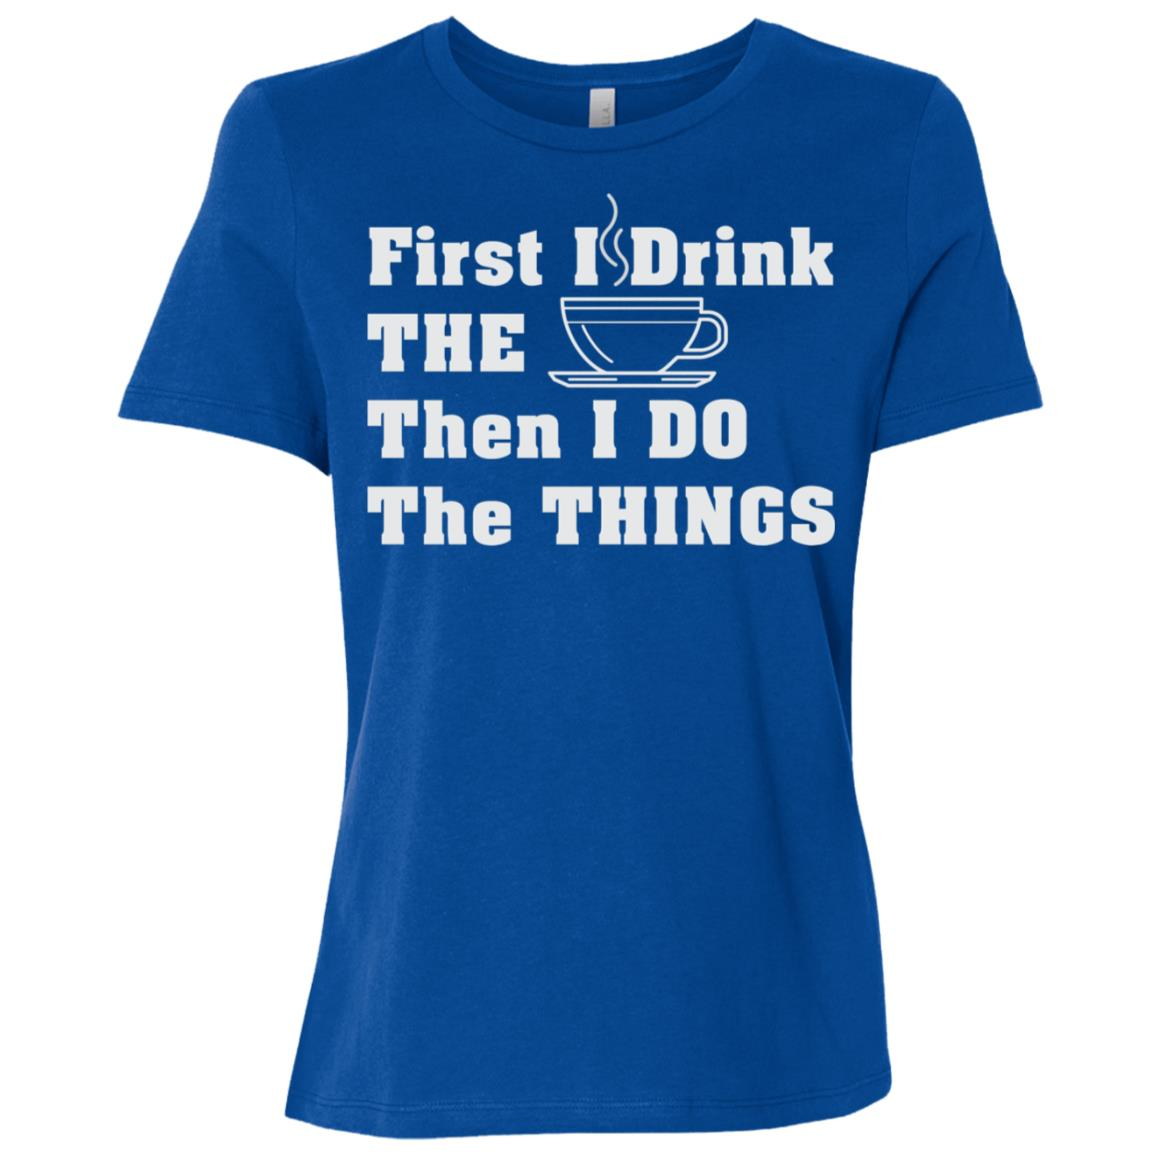 First I drink The Coffee Then I Do The Things Women Short Sleeve T-Shirt